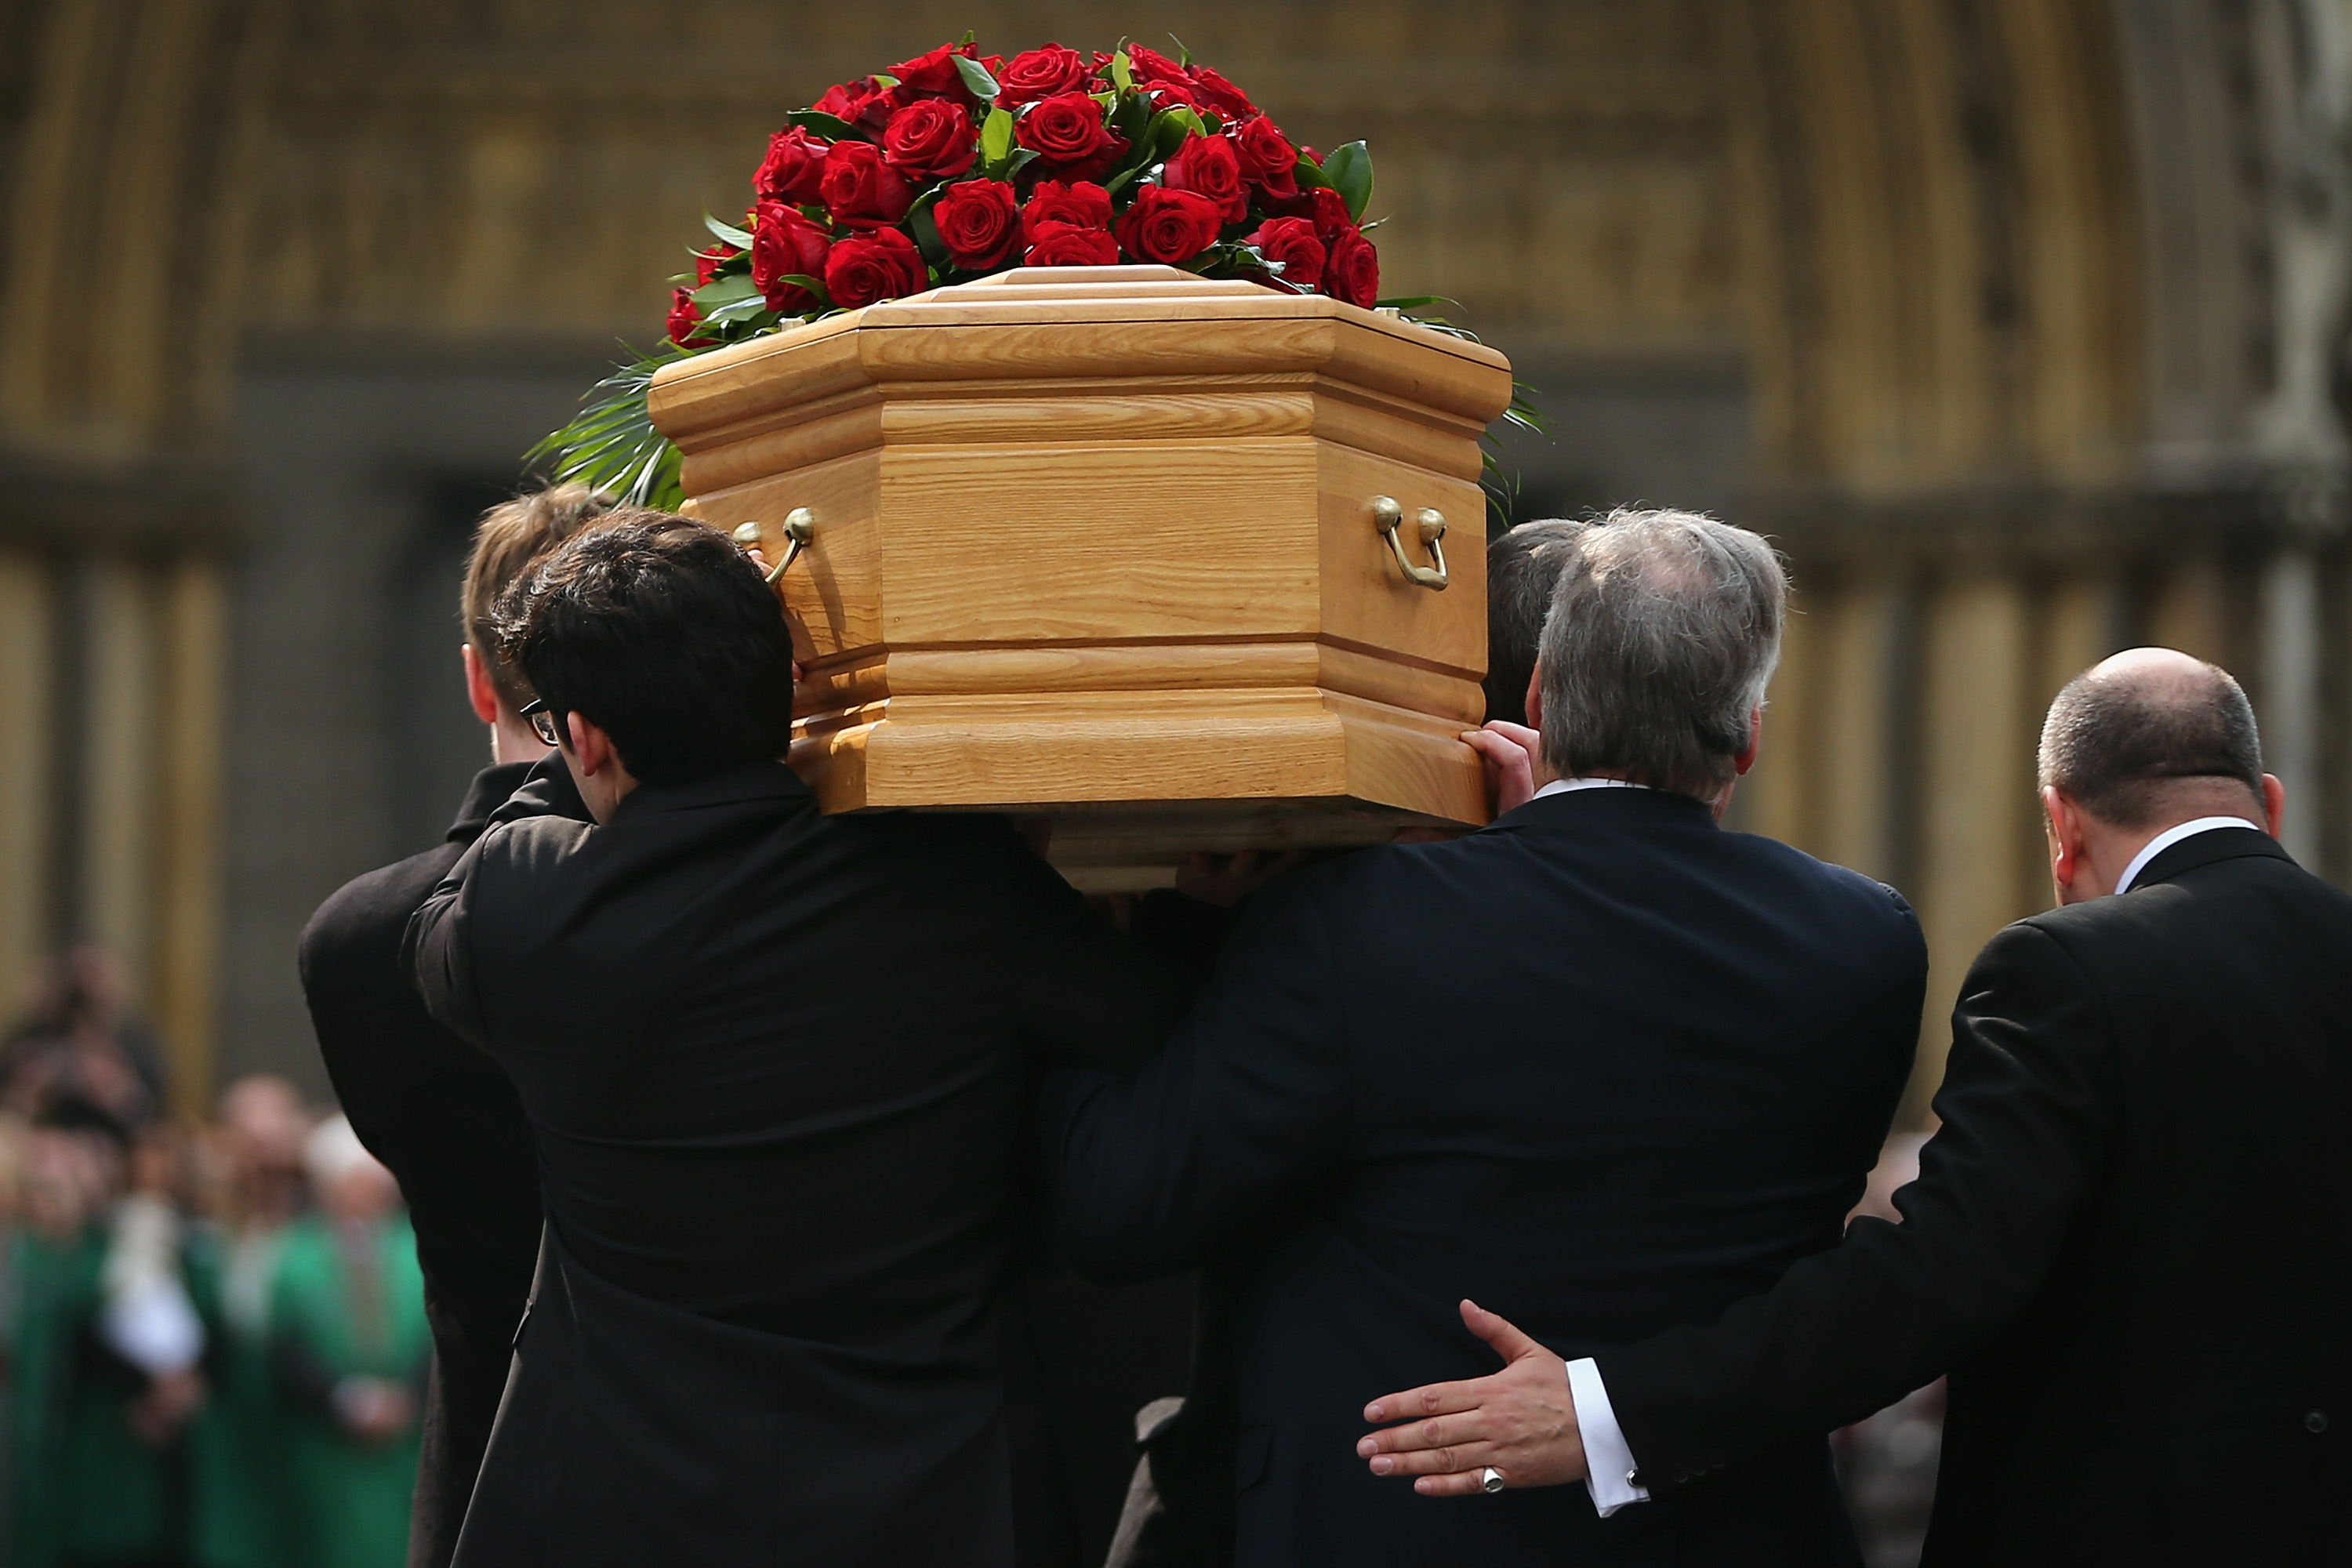 The coffin of the late Tony Benn is carried into the grounds of Westminster Abbey and St Margaret's Church for his funeral in London, England. Former Labour cabinet minister and opponent to the Iraq War Tony Benn, died at the age of 88 on March 14, 2014.